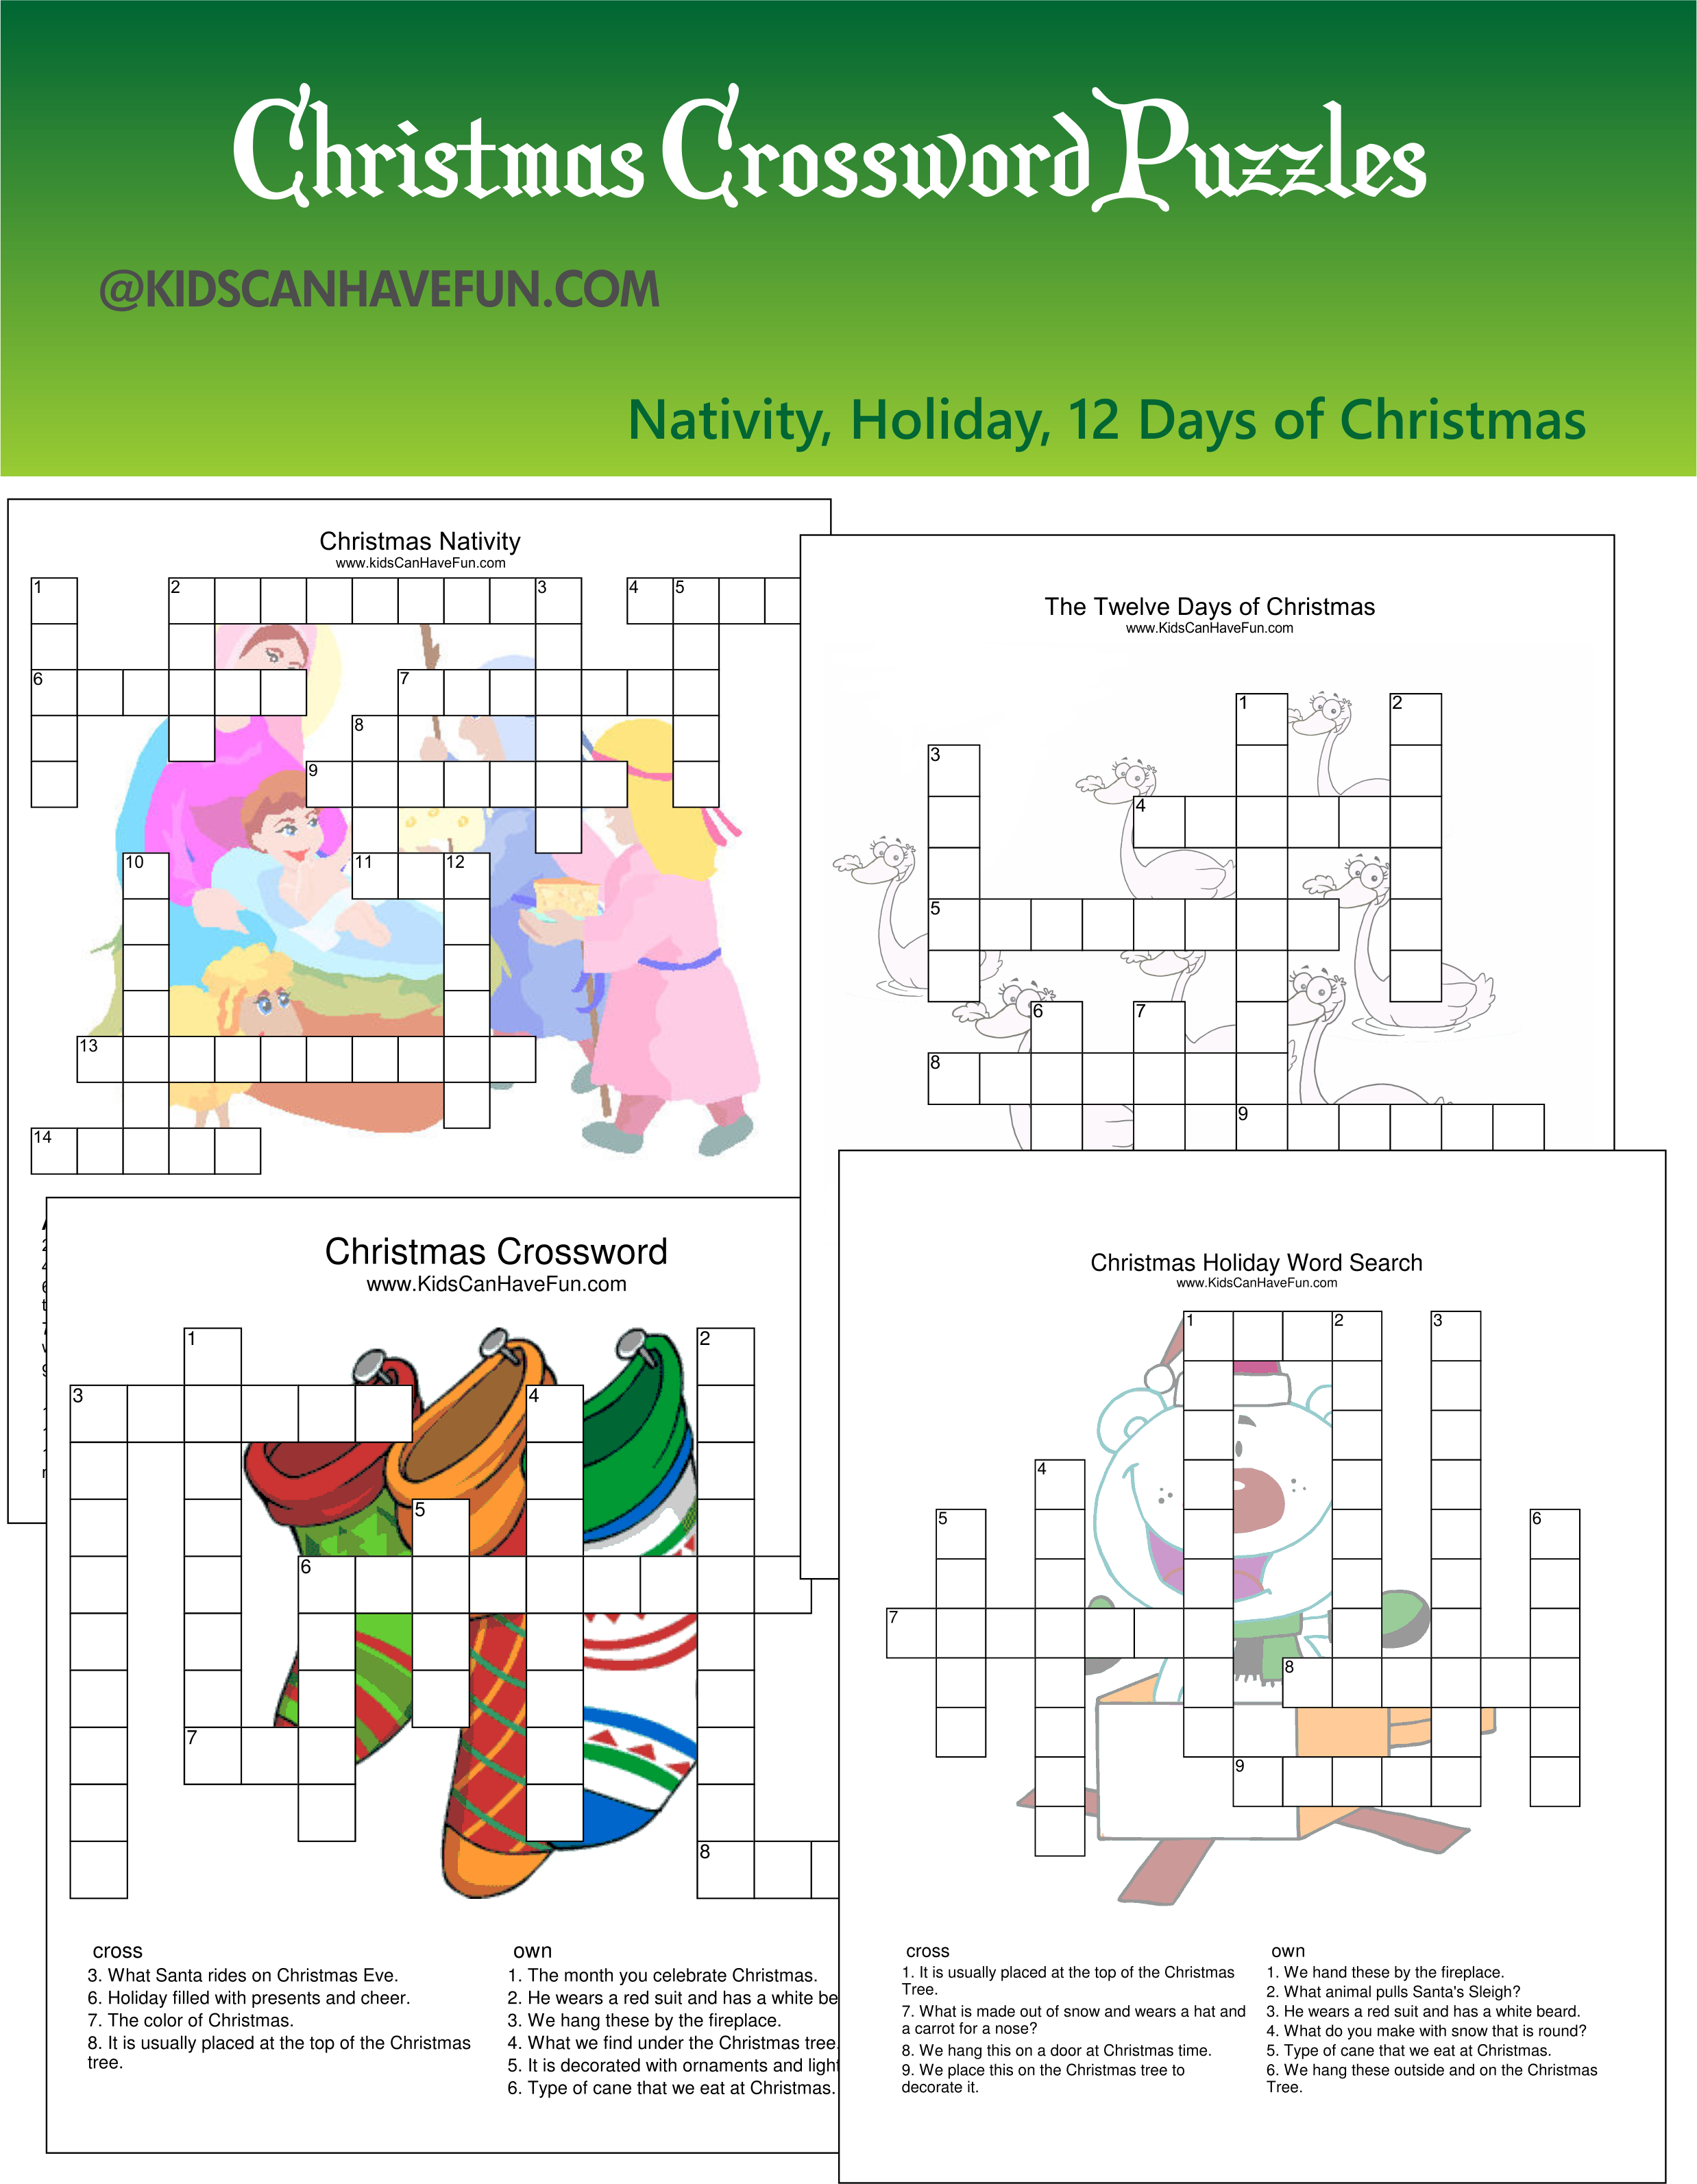 Christmas crossword puzzles for kids scanhavefun